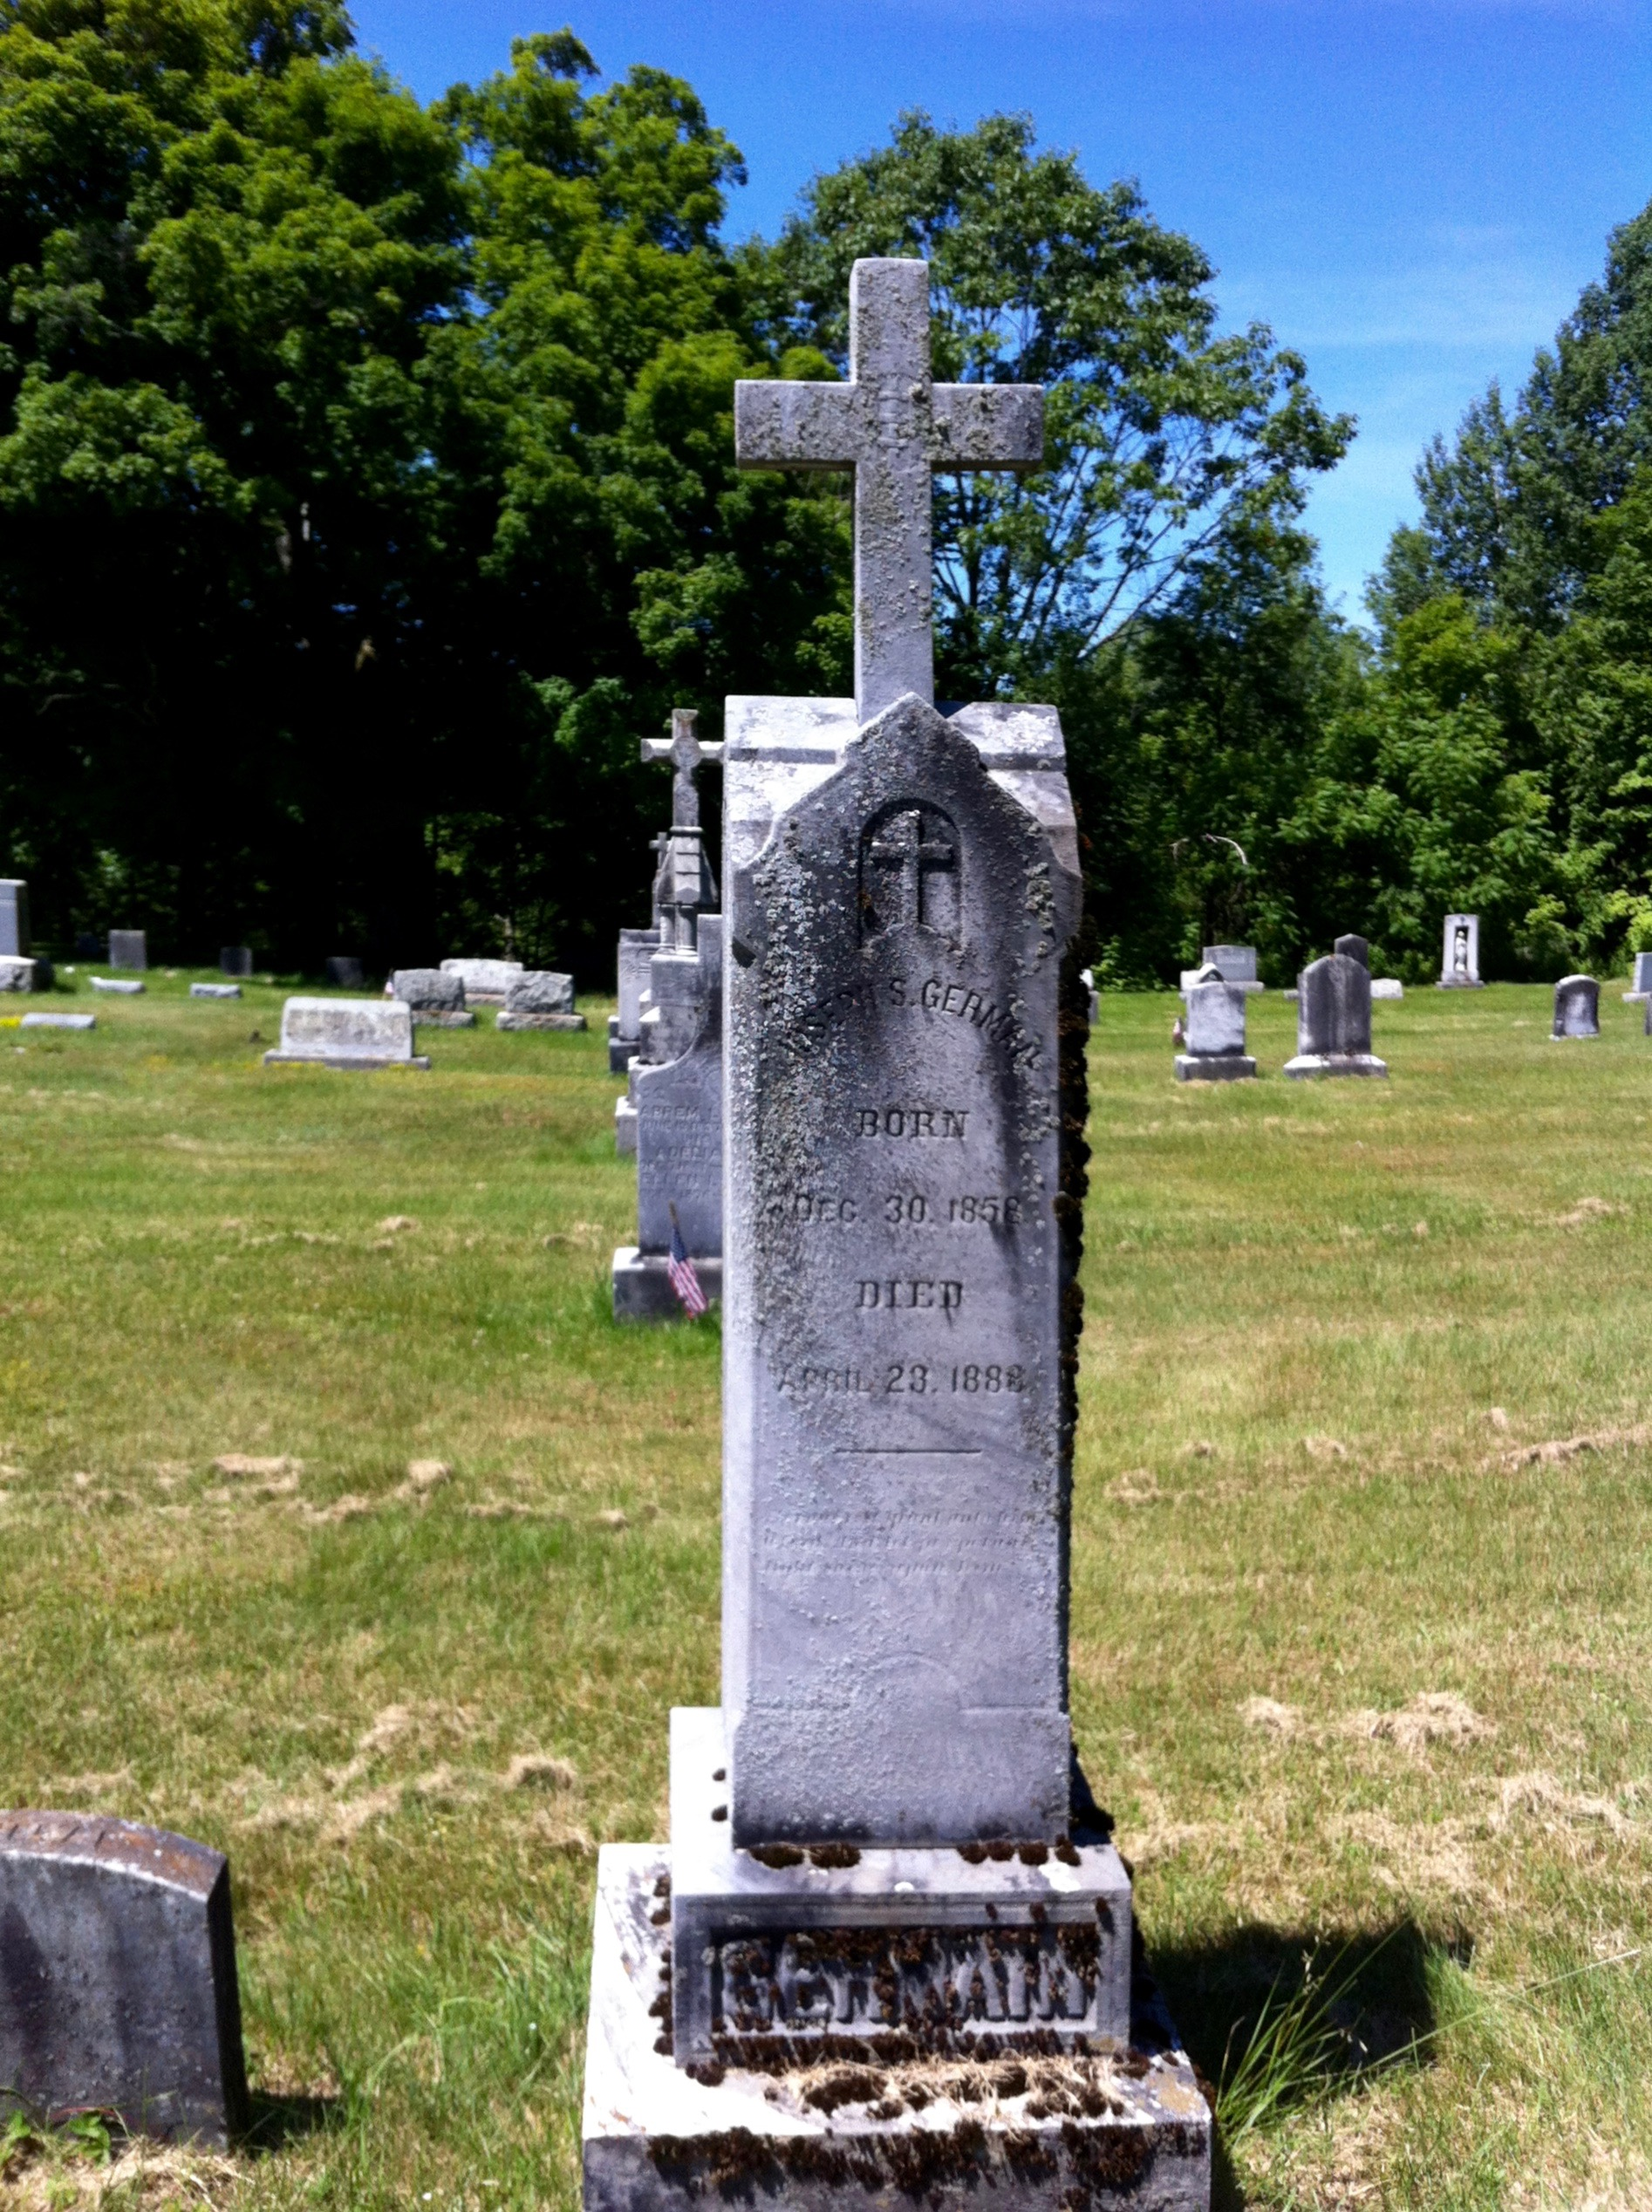 Tombstone of Joseph S. Germain, St. Marys Cemetery, Brandon, Vermont [From Diane Tourville's collection]